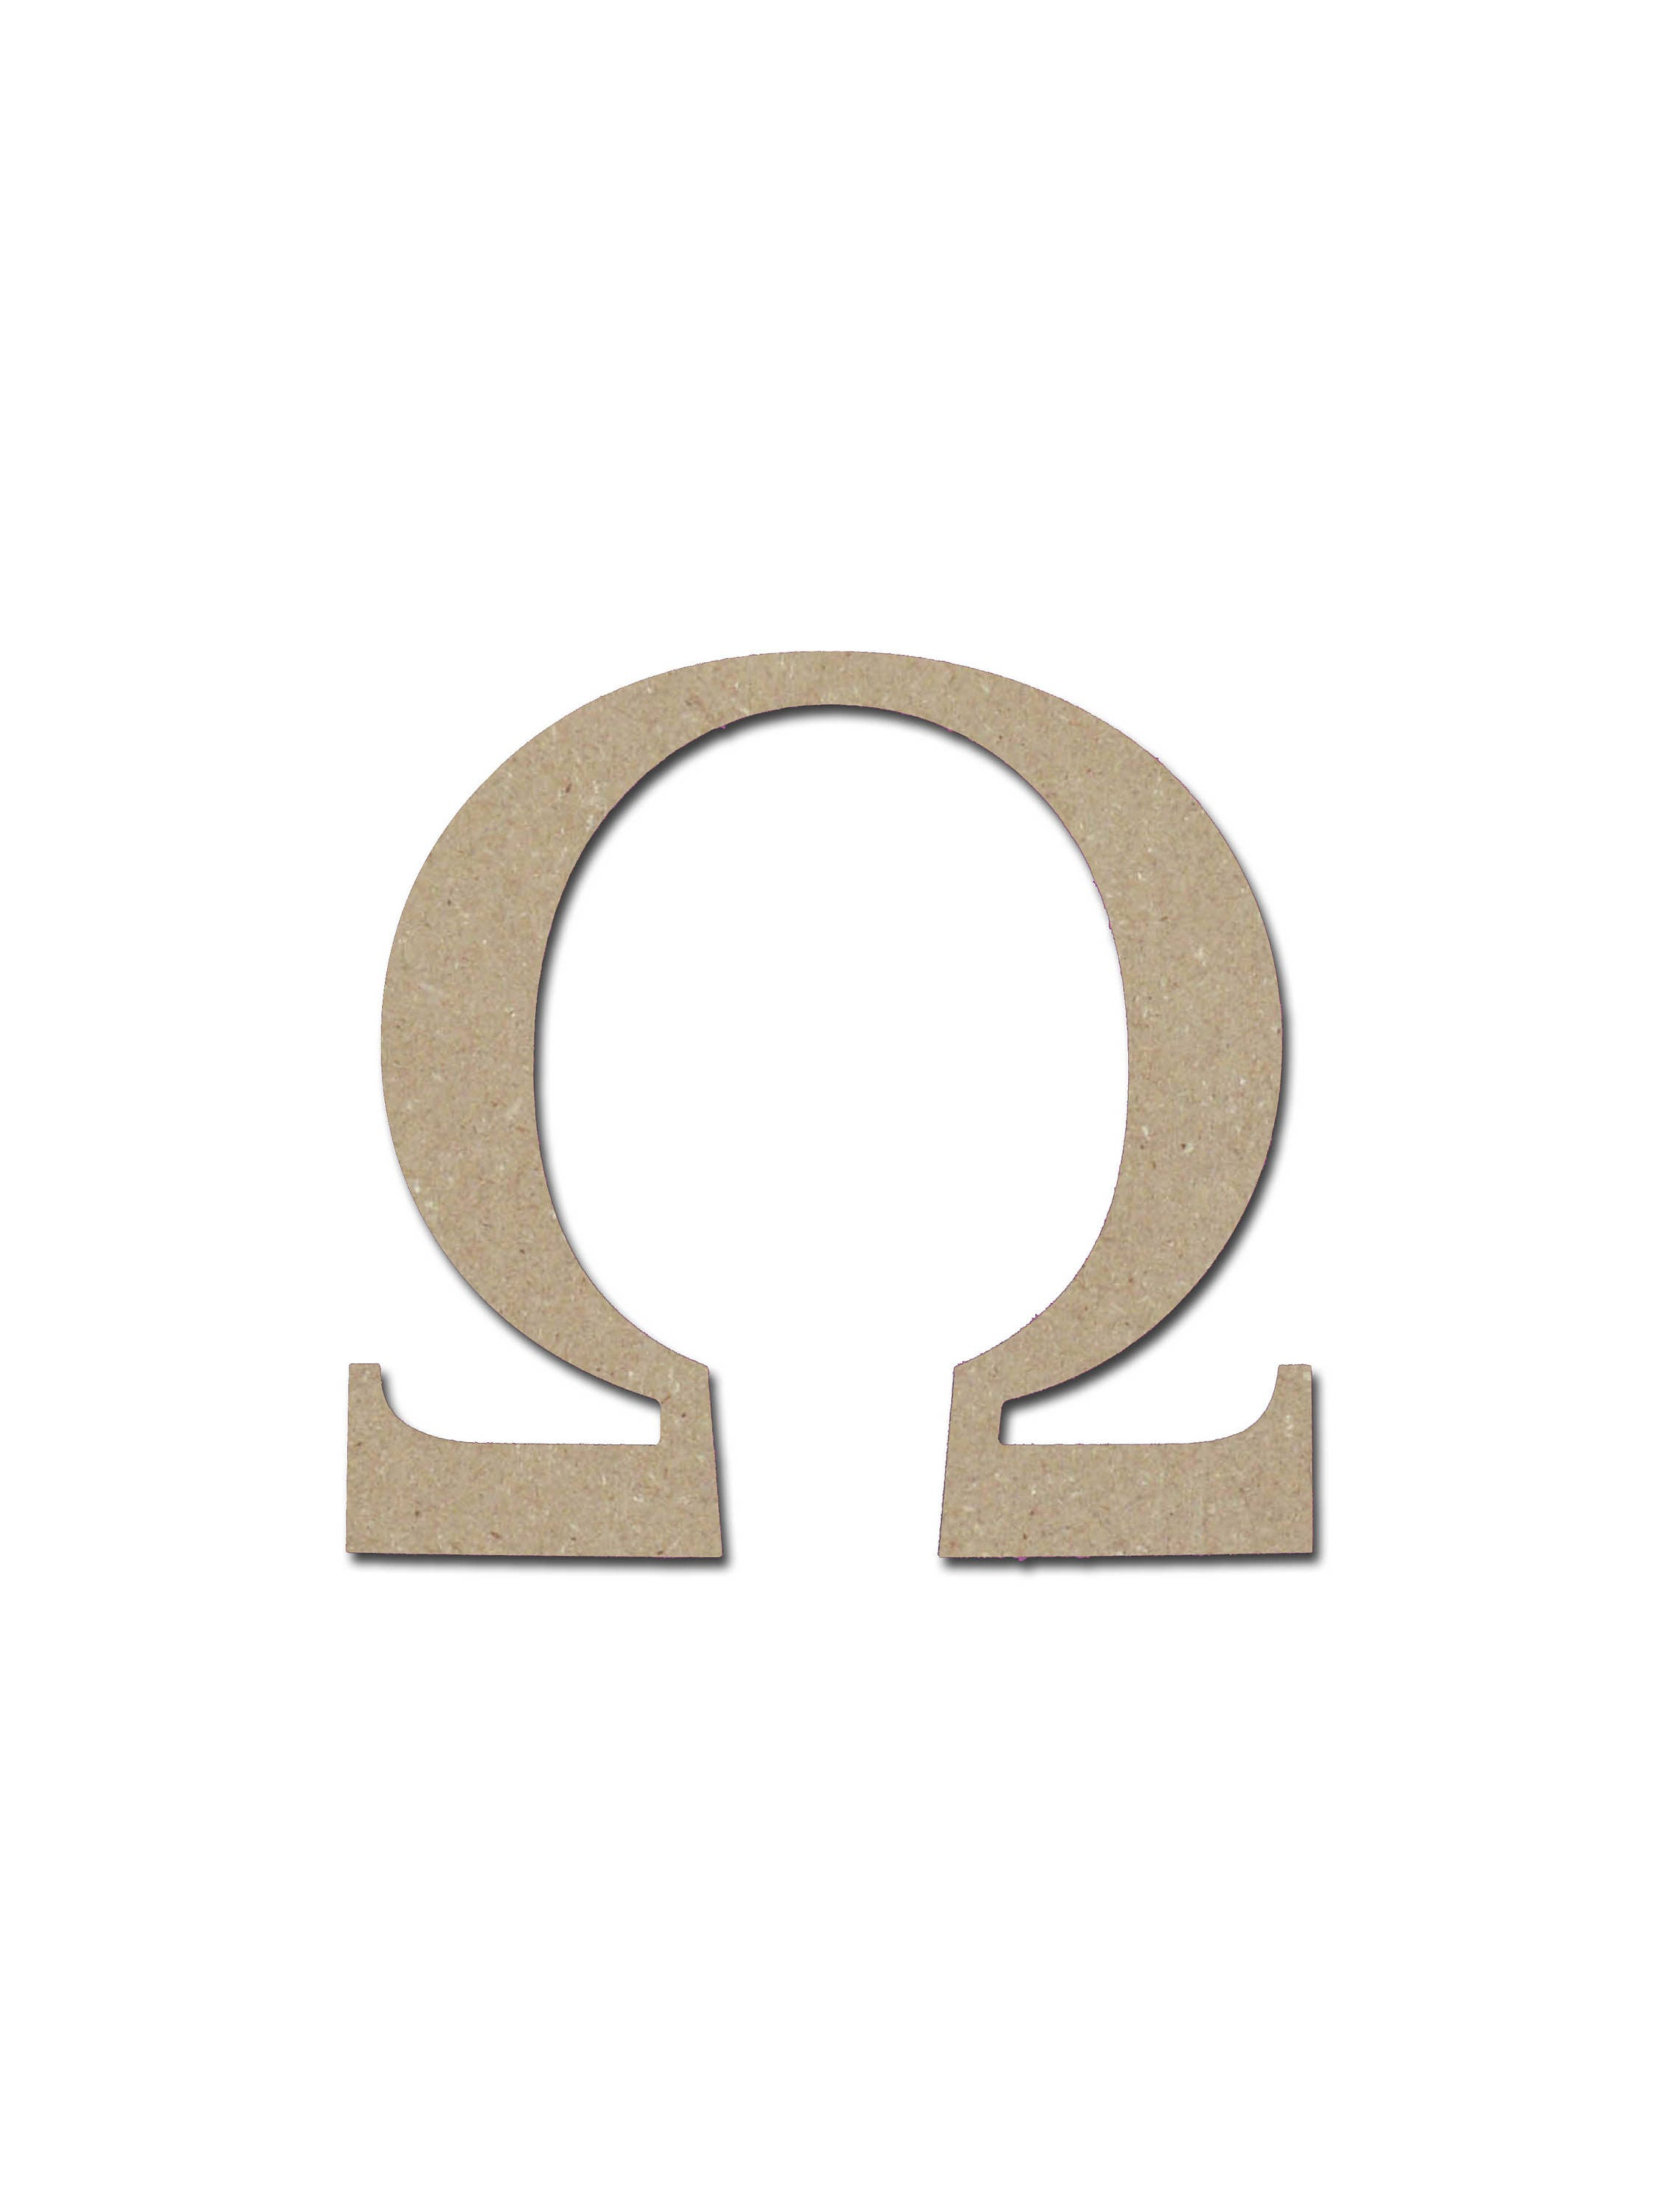 Greek letter omega symbol unfinished mdf letters 6 inch zoom biocorpaavc Gallery